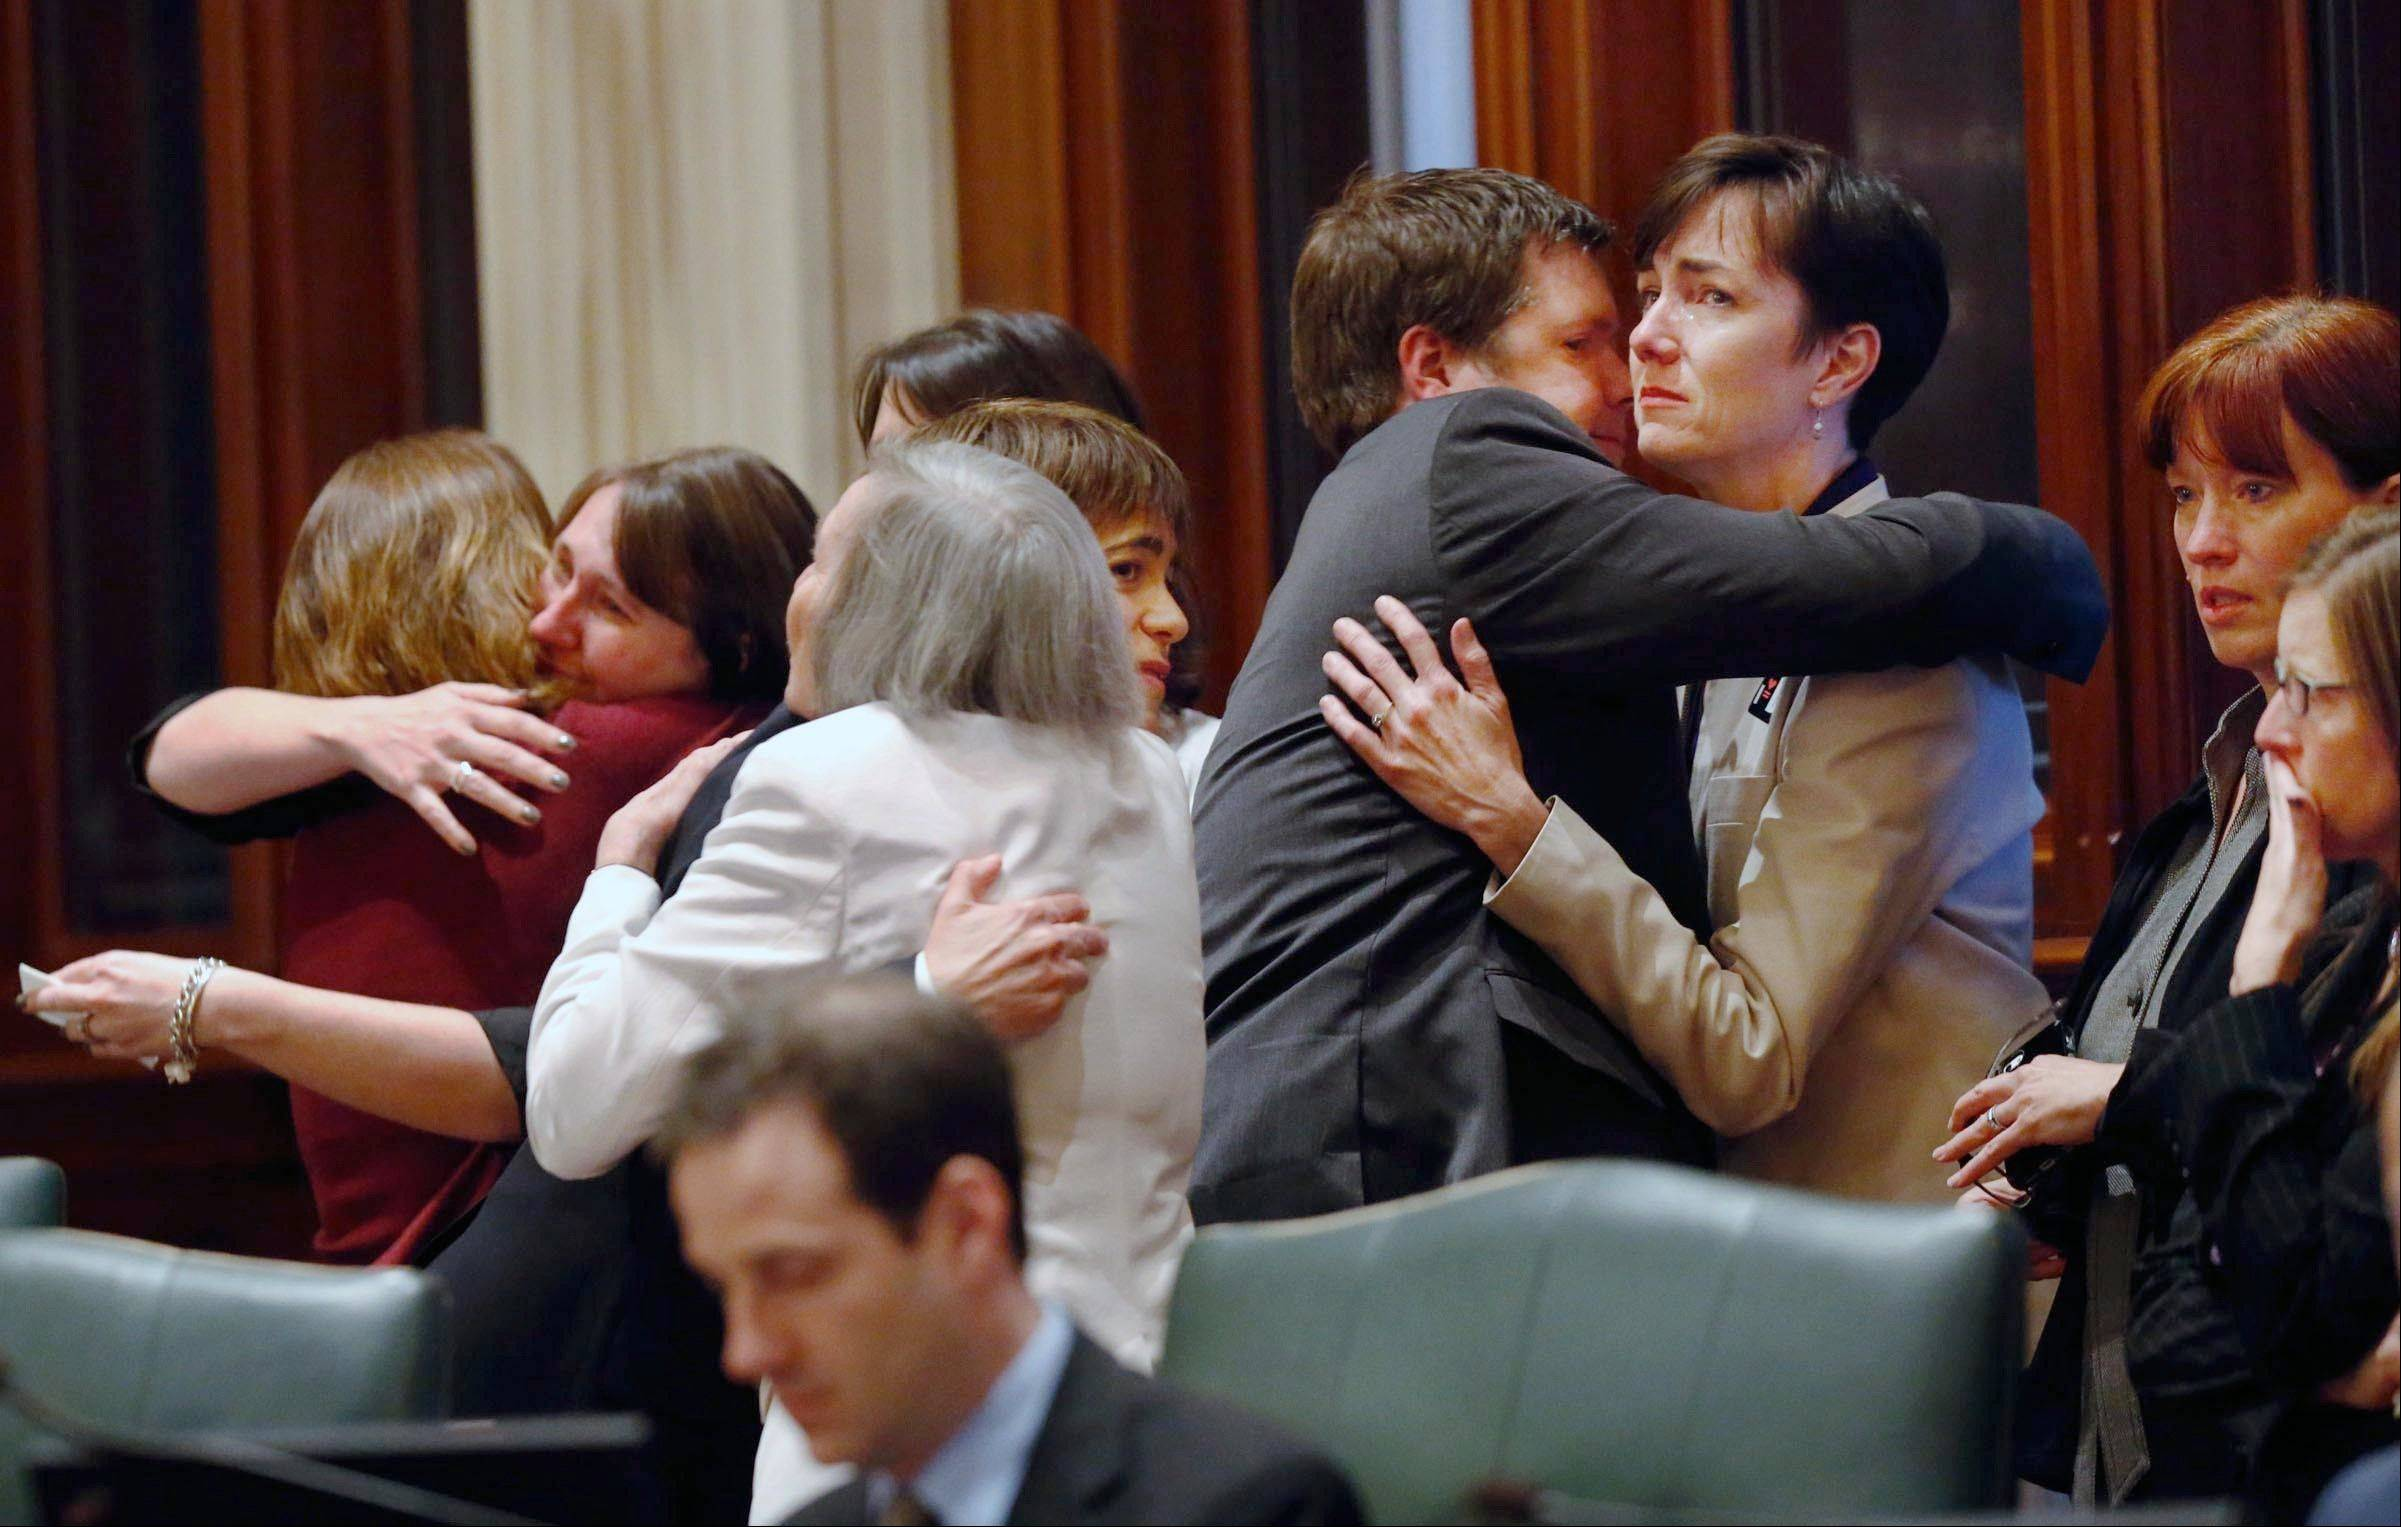 House declines same-sex marriage vote